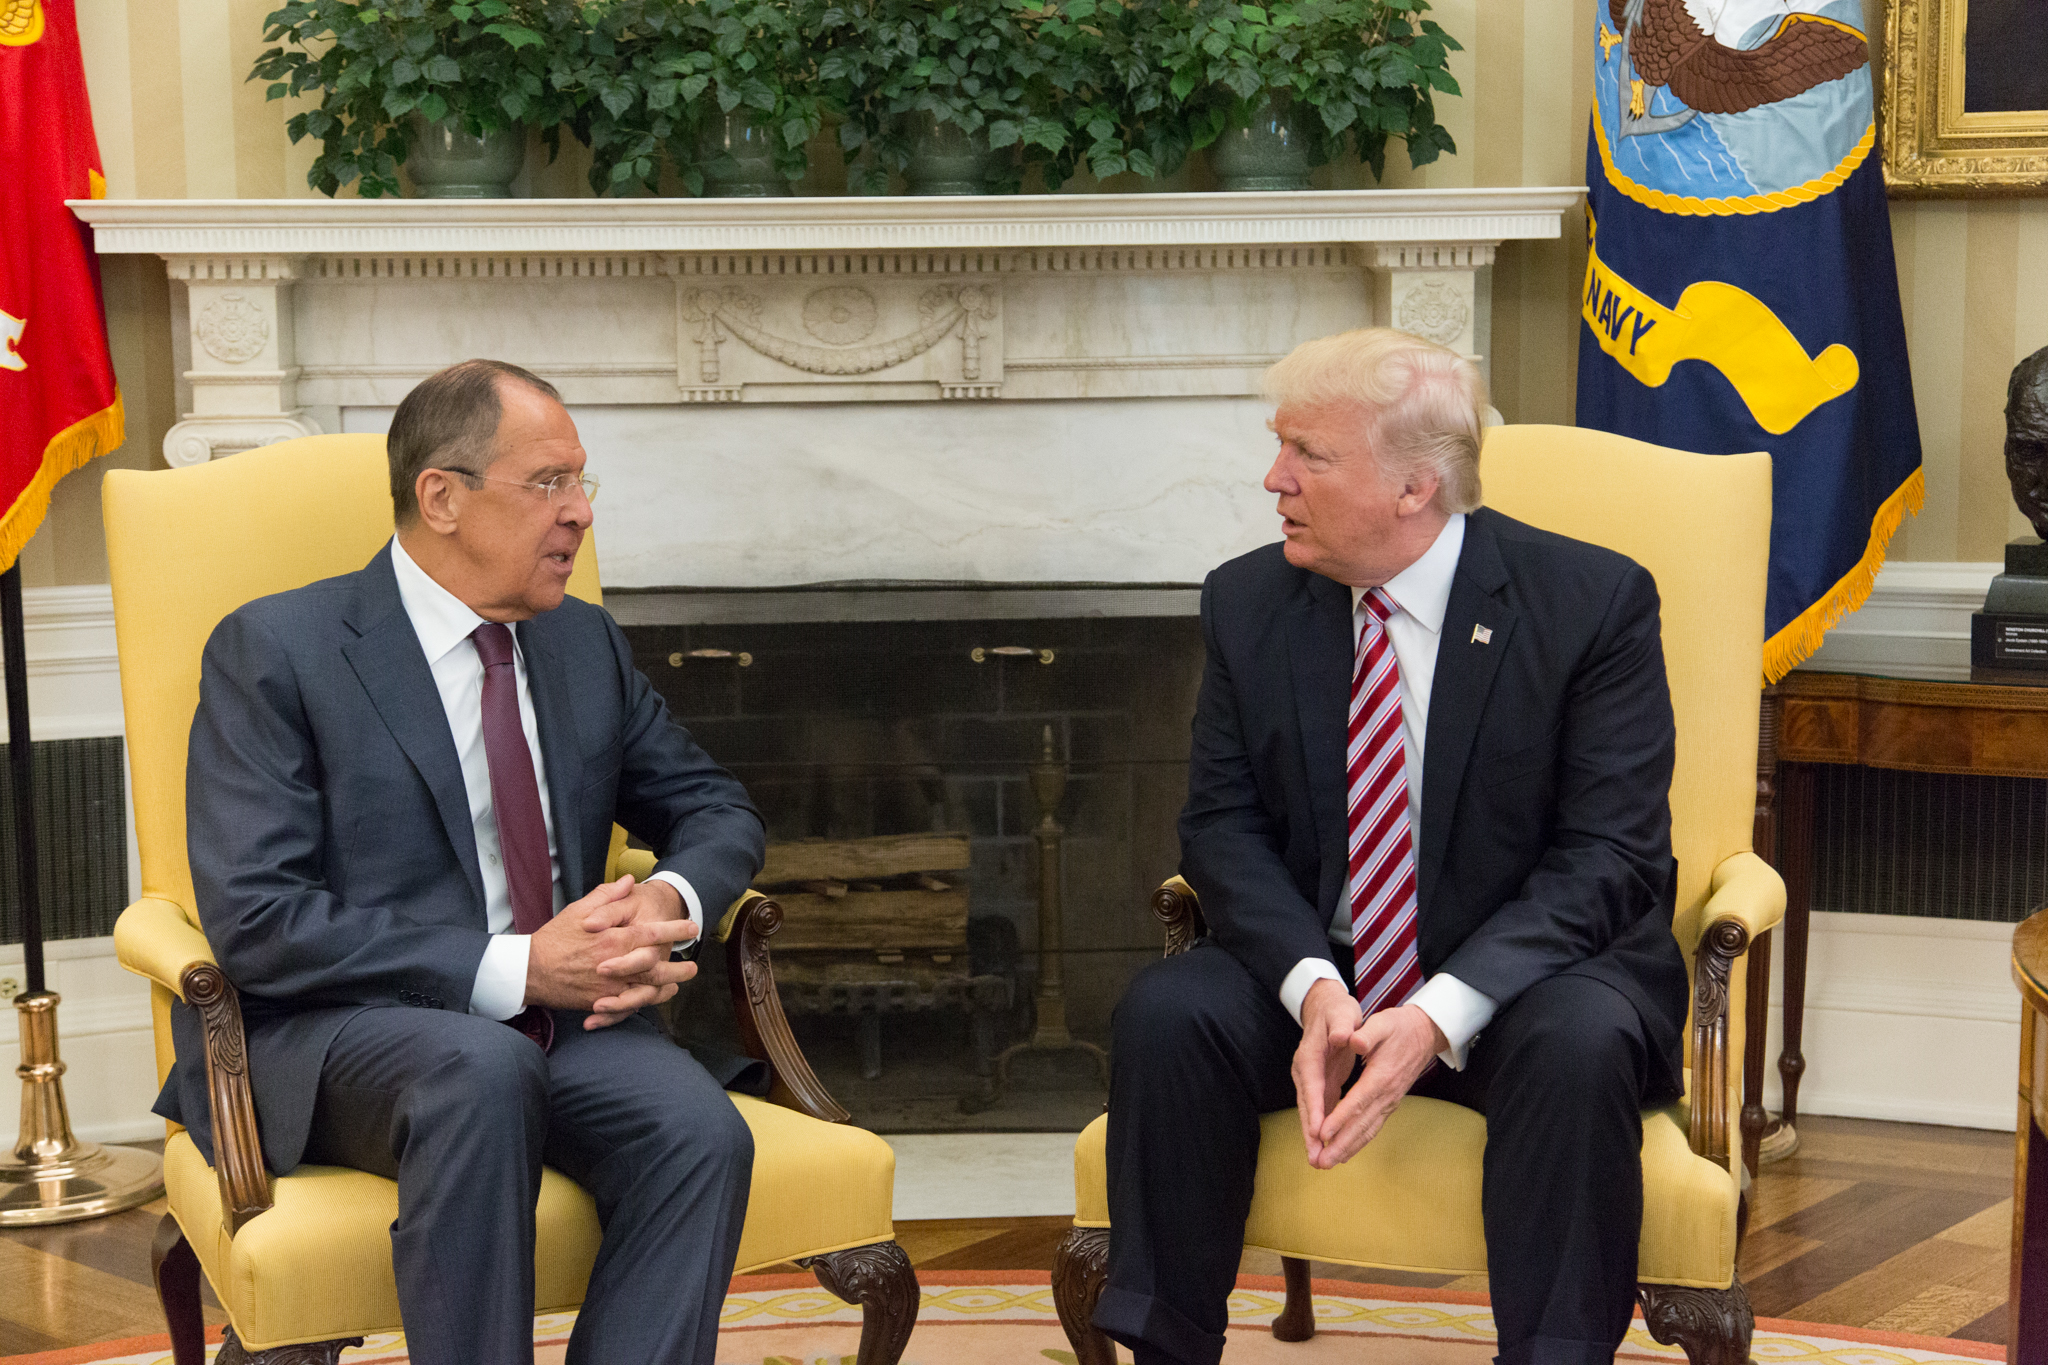 President Donald Trump speaks with Russian Foreign Minister Sergey Lavrov in the Oval Office, Wednesday, May 10, 2017, at the White House in Washington, D.C.